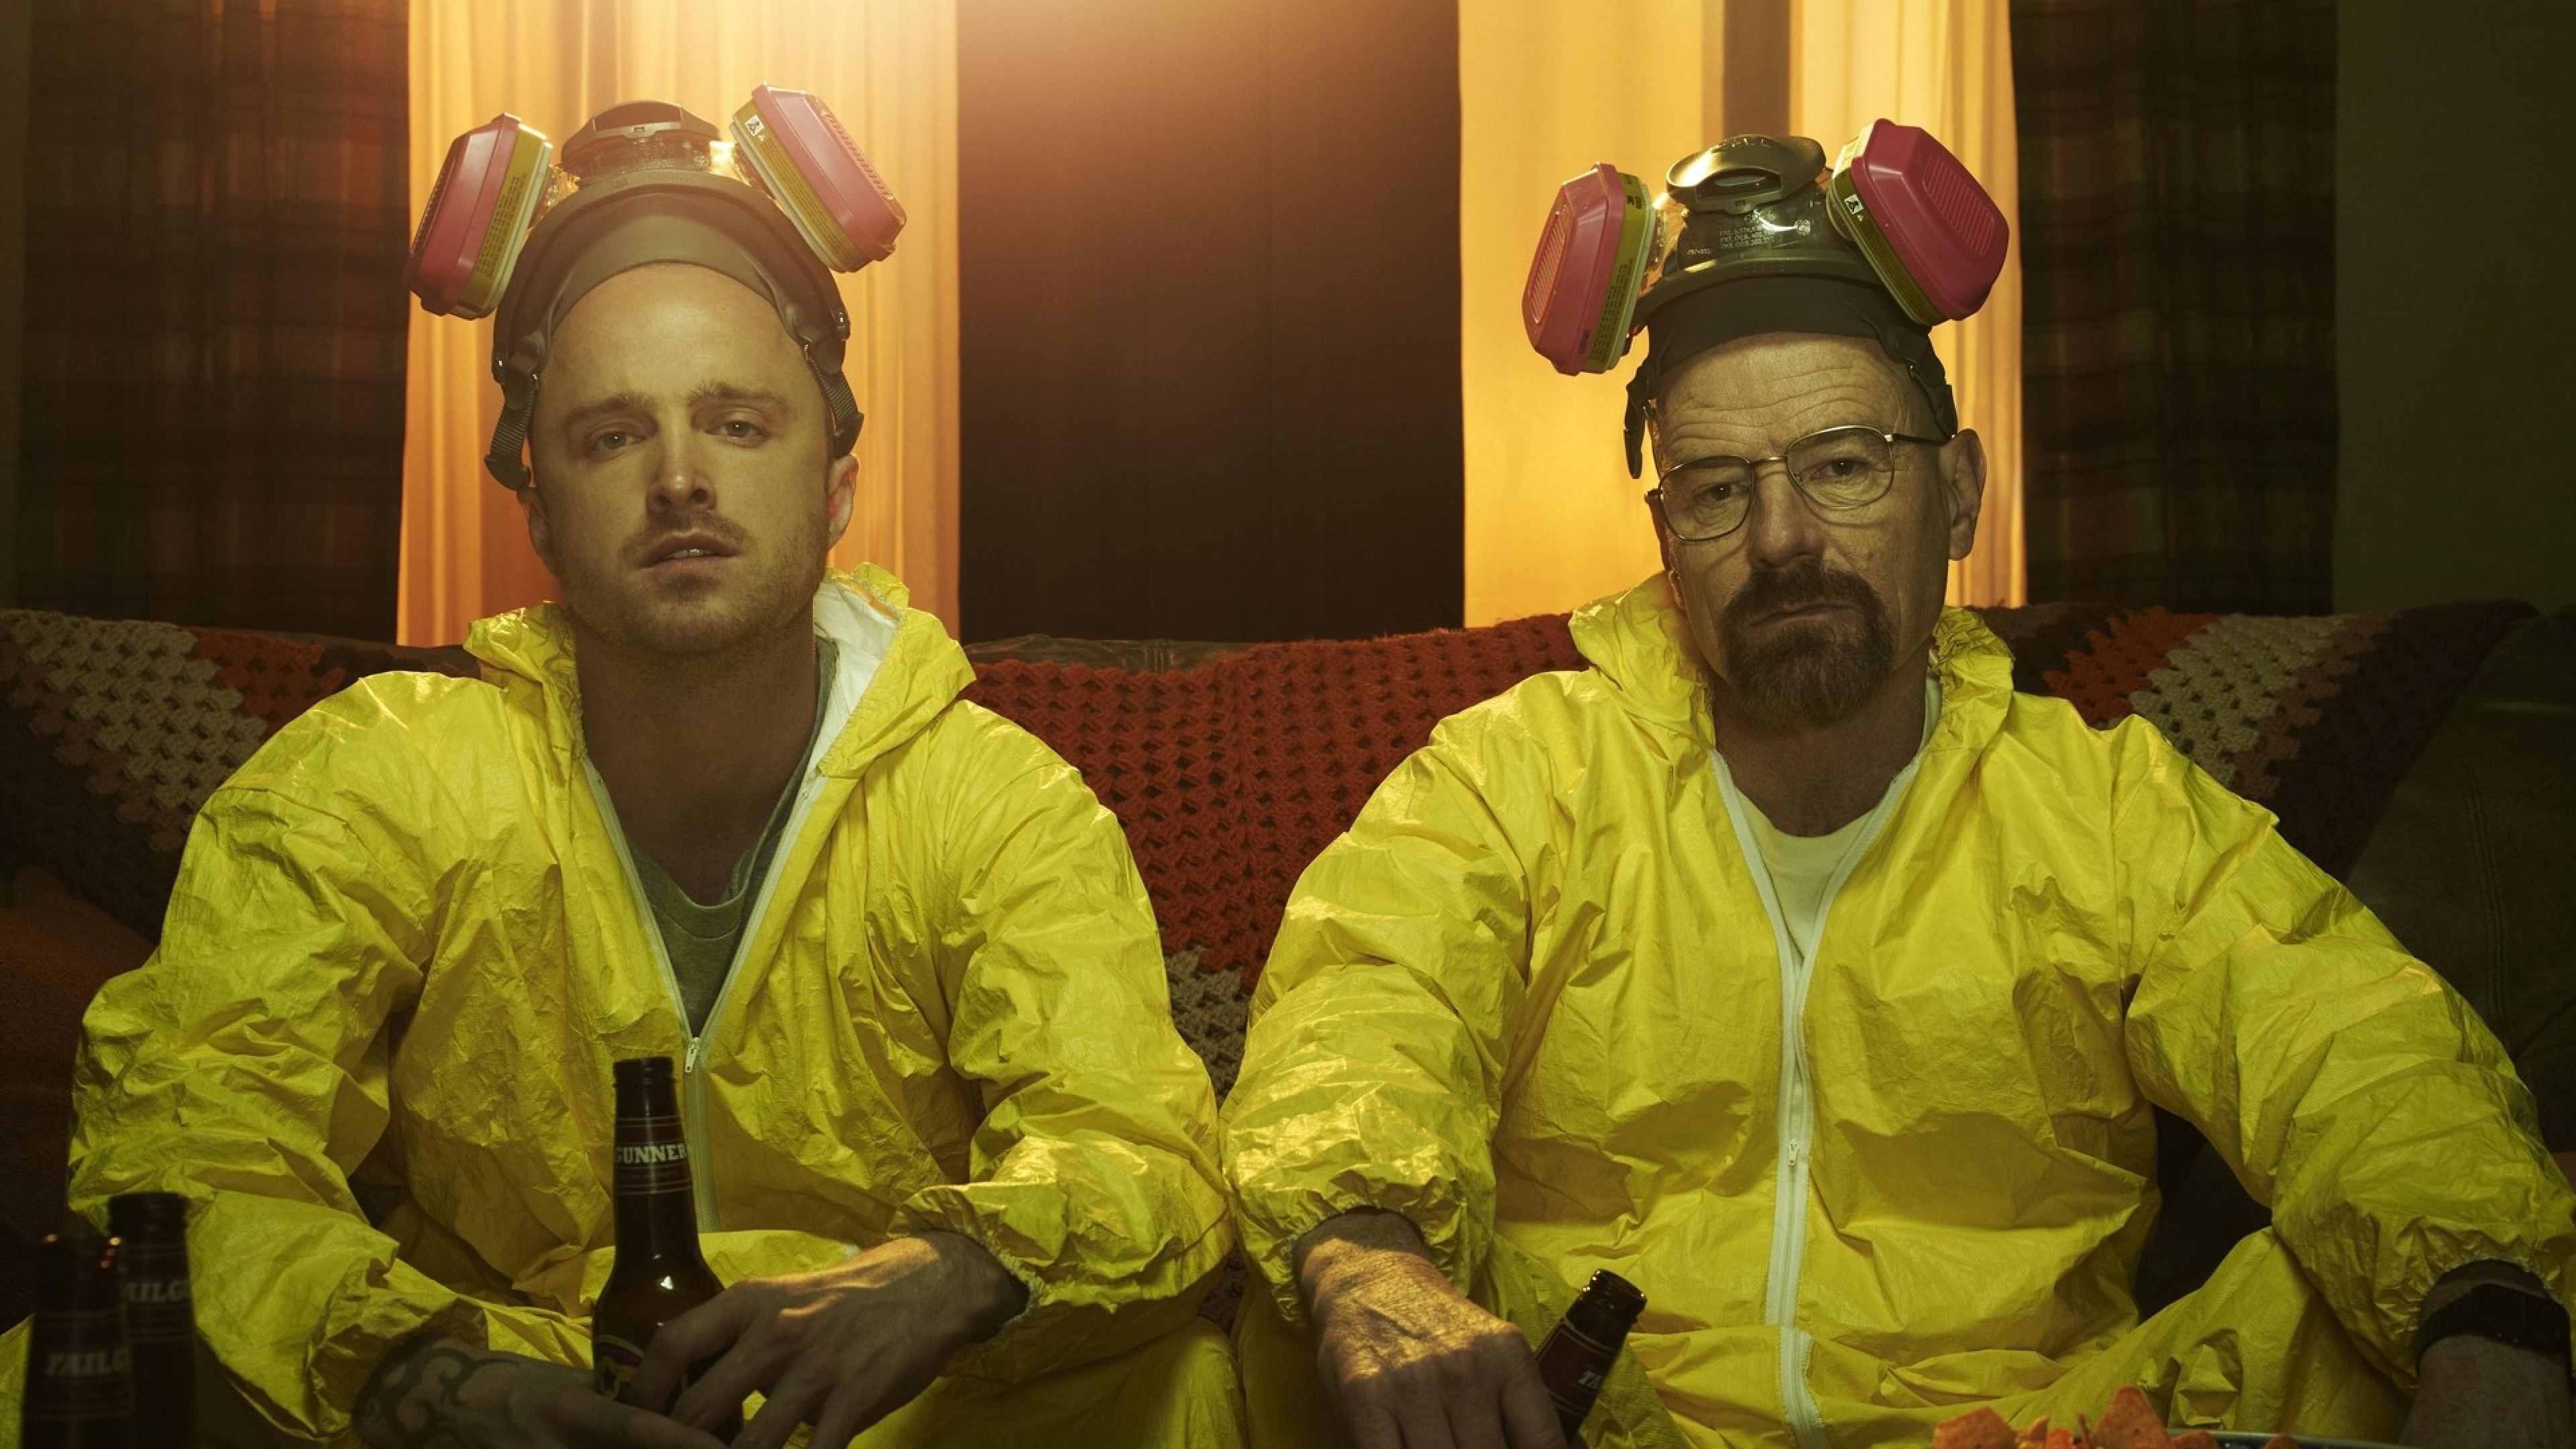 Breaking-Bad-1080p-Sdeer-wallpaper-wpc9003177